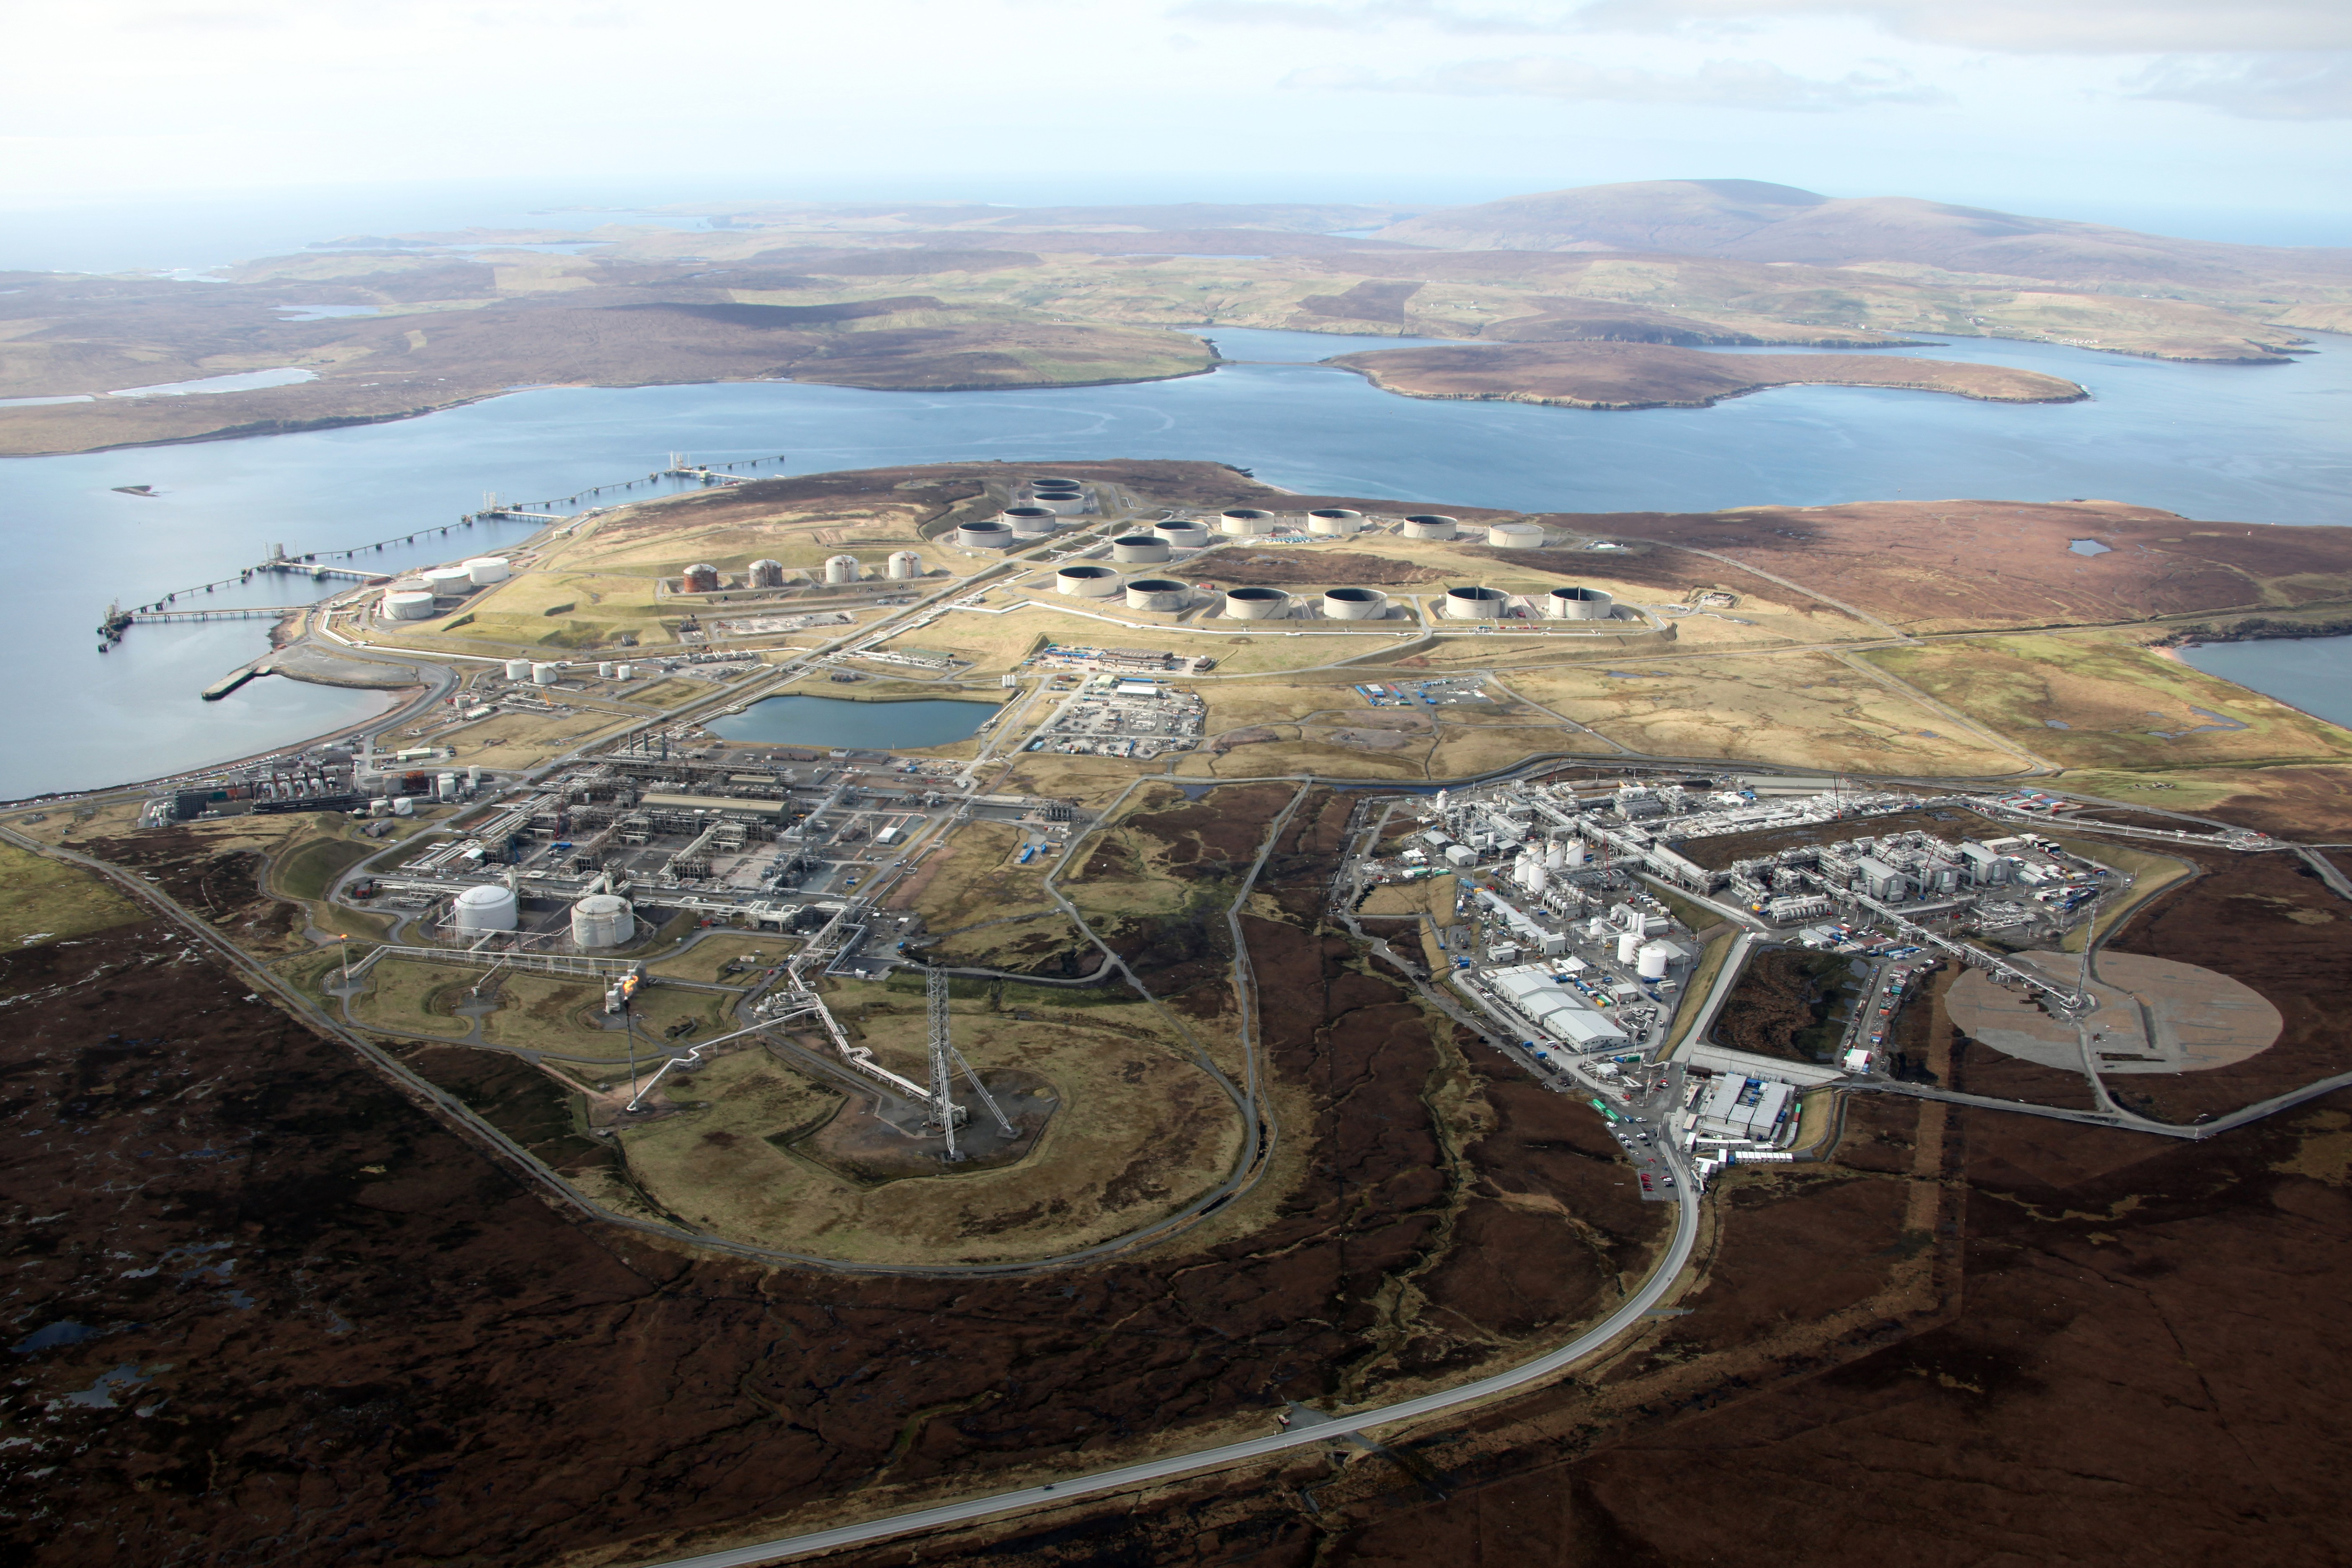 The harbour near to Sullom Voe was evacuated after a suspicious package turned up yesterday morning